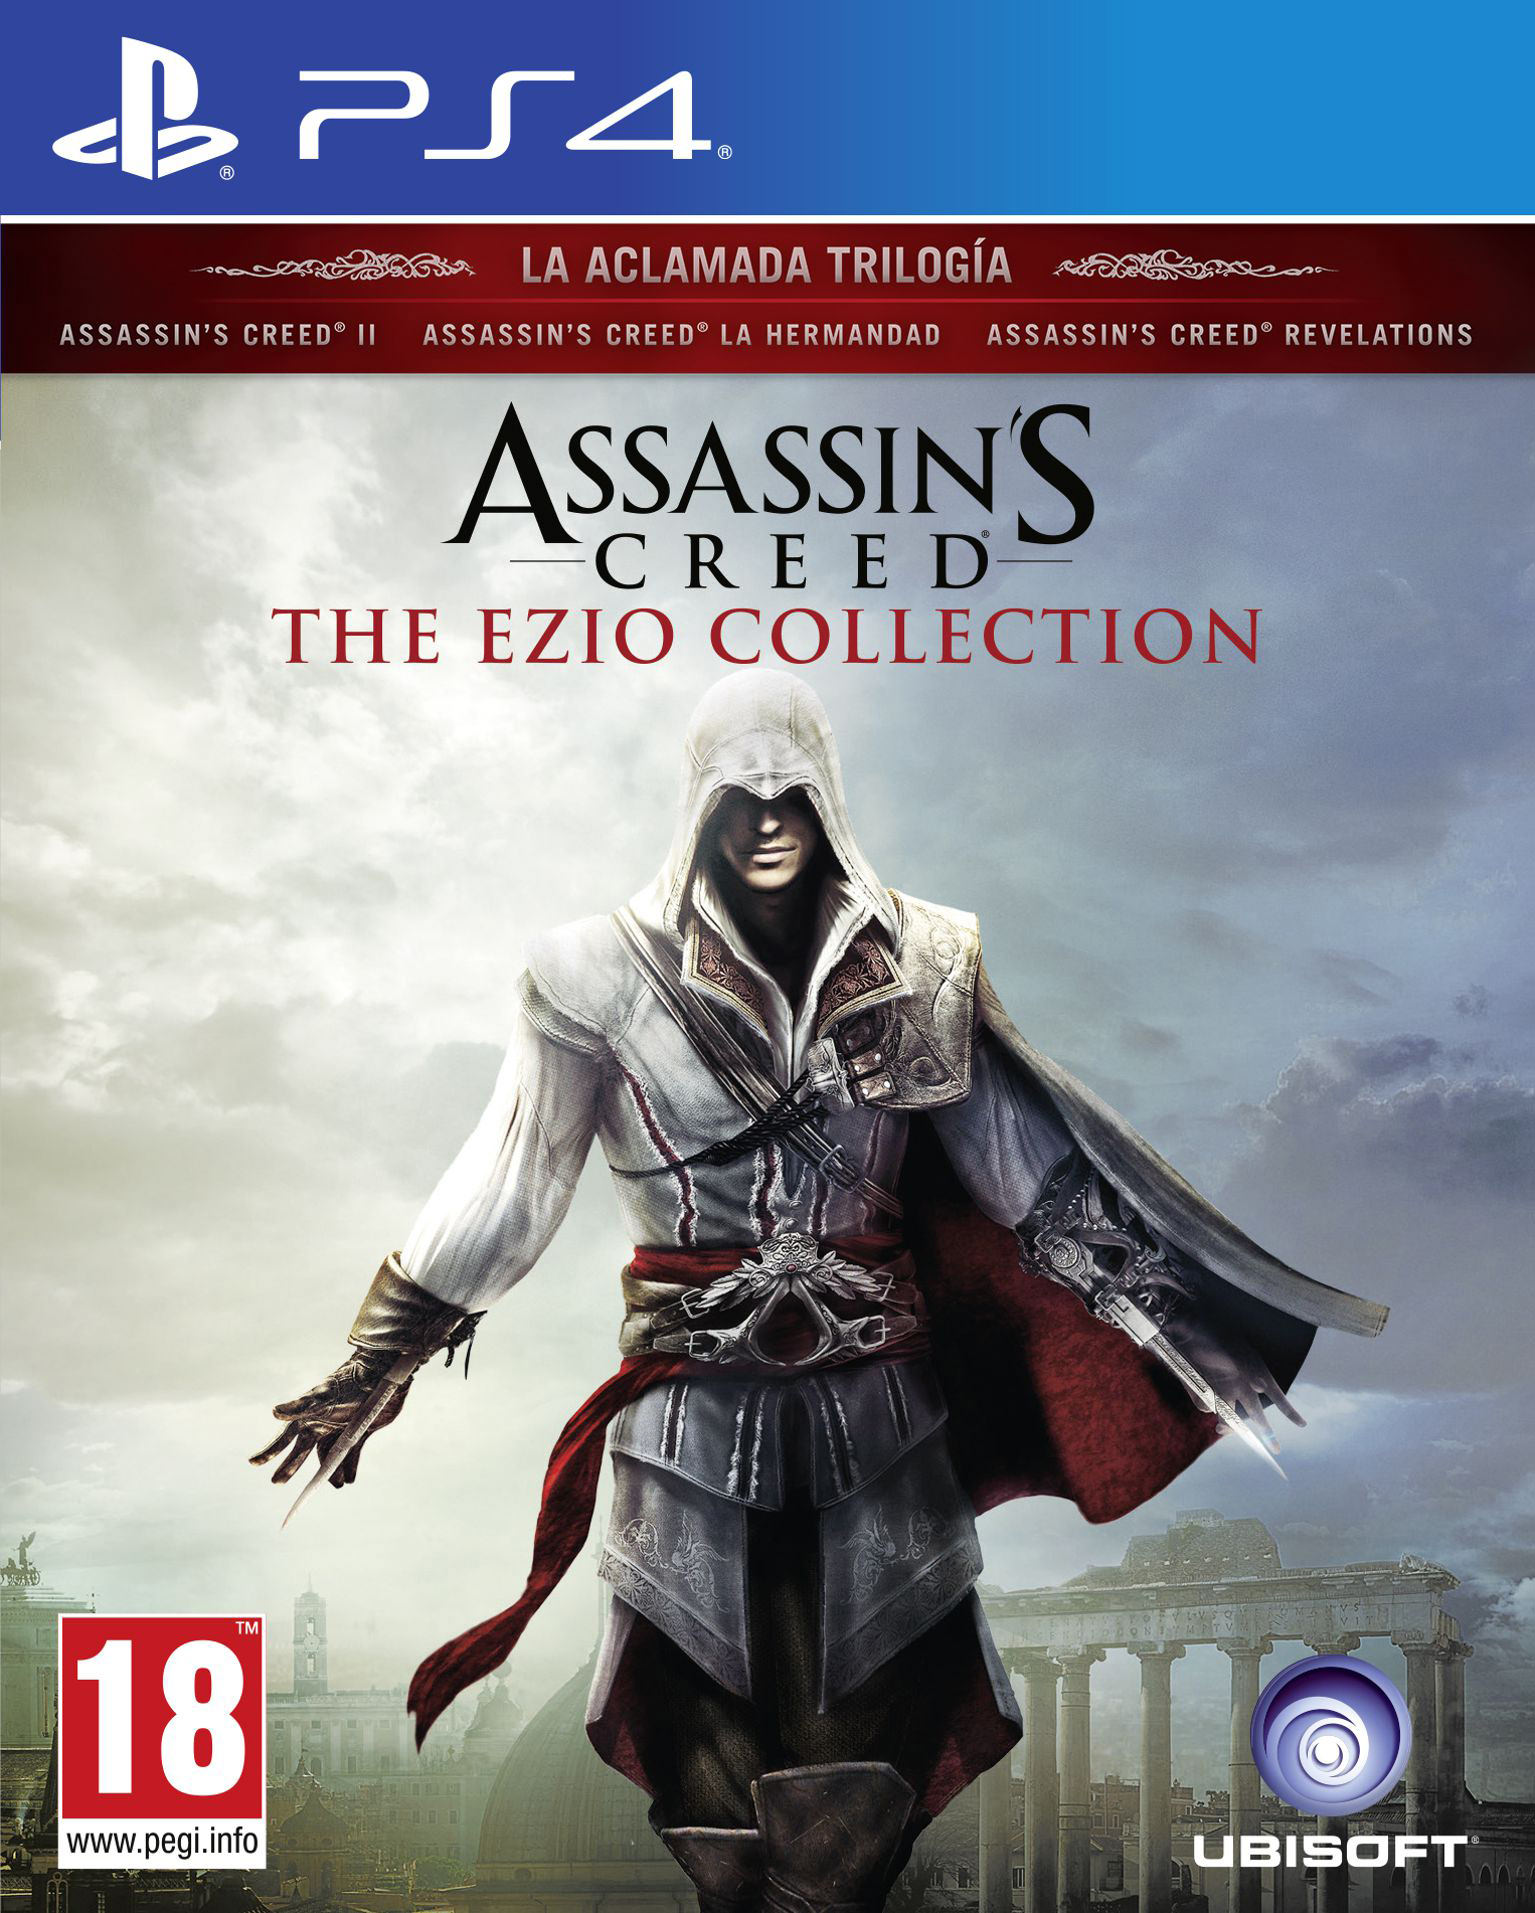 Assassin's Creed: The Ezio Collection [PS4] 5.05 / 6.72 / 7.02 [EUR] (2016) [Русский] (v1.02)